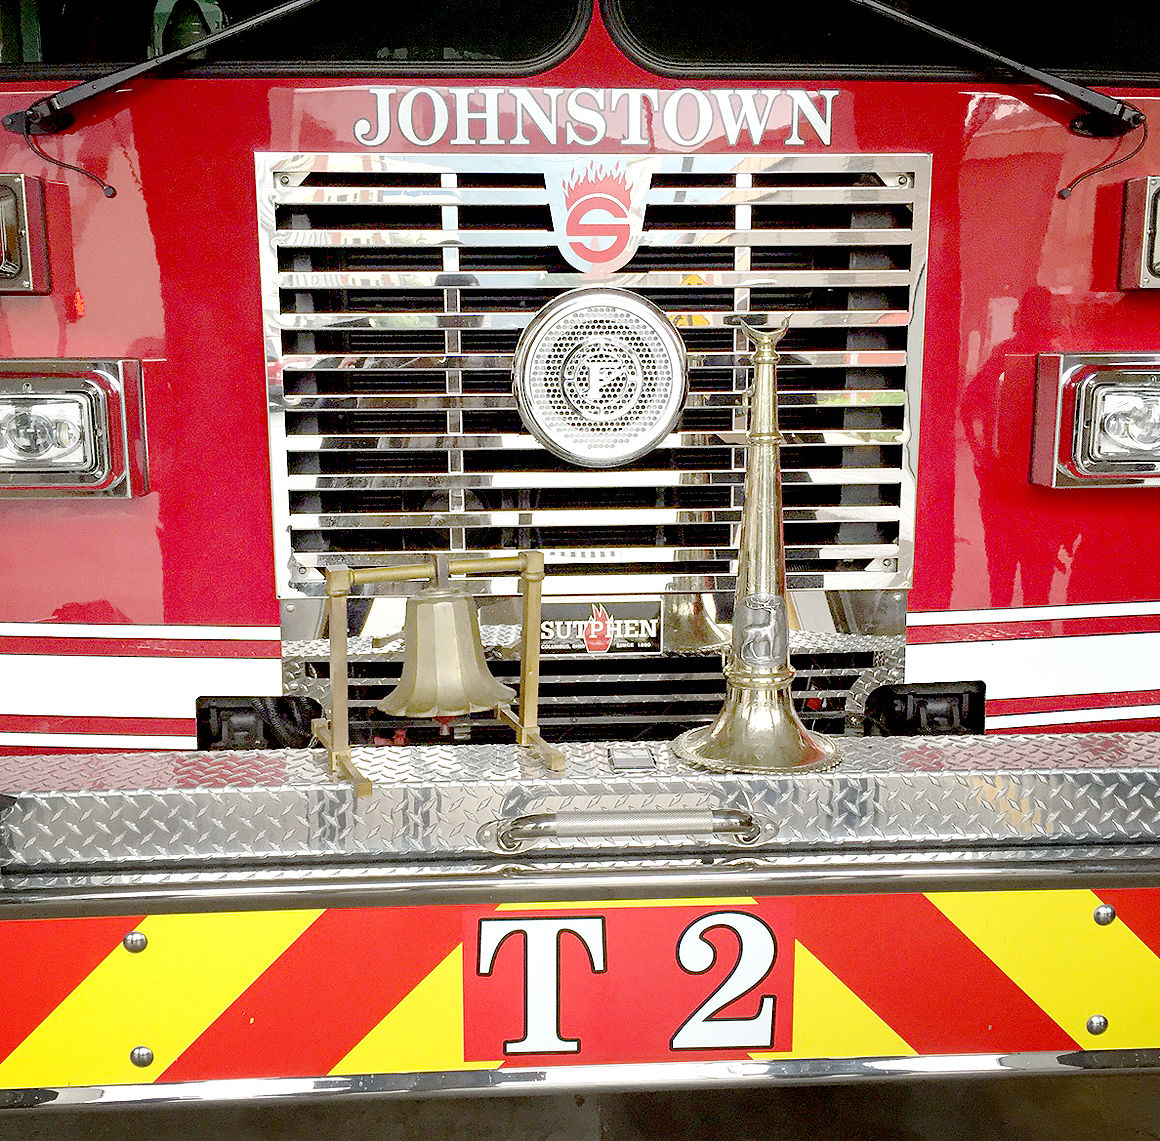 johnstown dating Wjht-fm johnstown, pa jump to sections mark zuckerberg announced yesterday that they are putting a new dating service hot 92 wants to help make this mother.